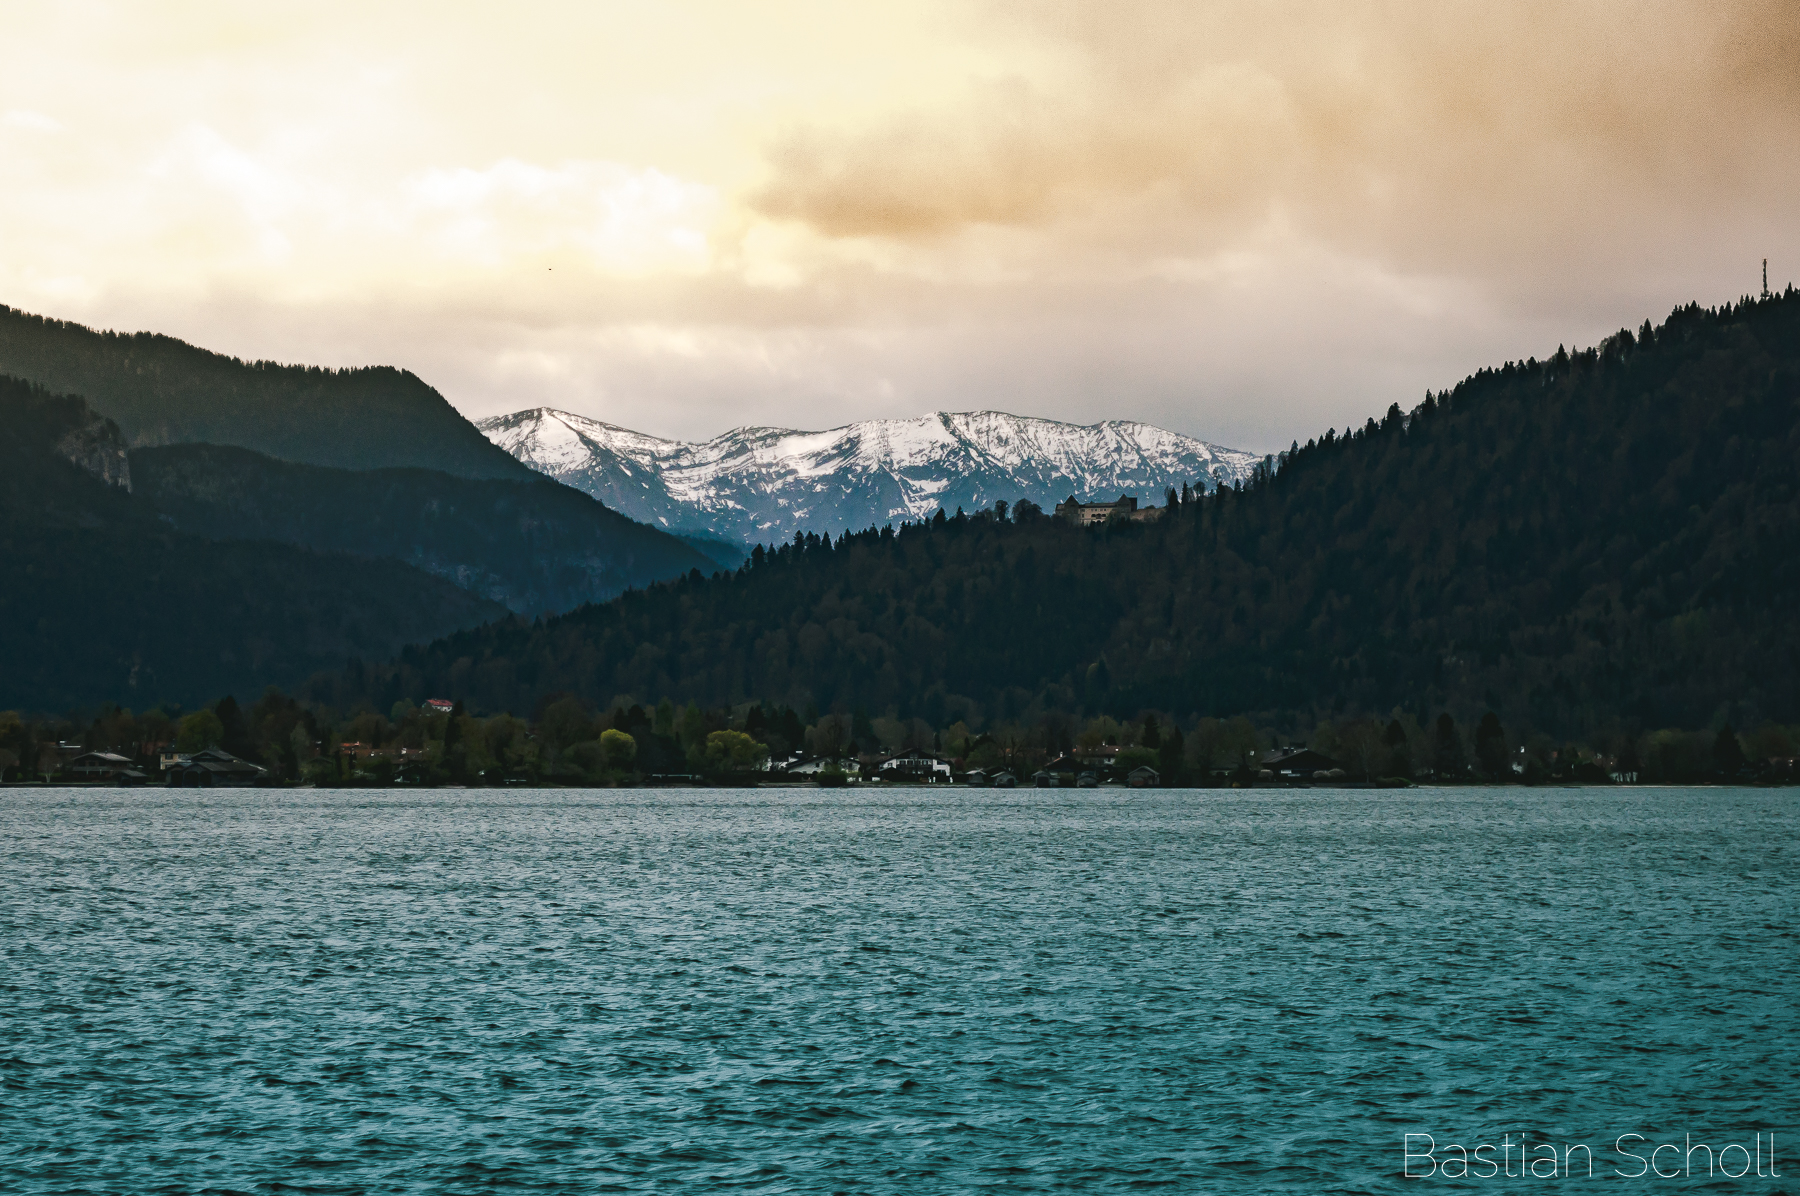 View over Lake Tegernsee, Germany